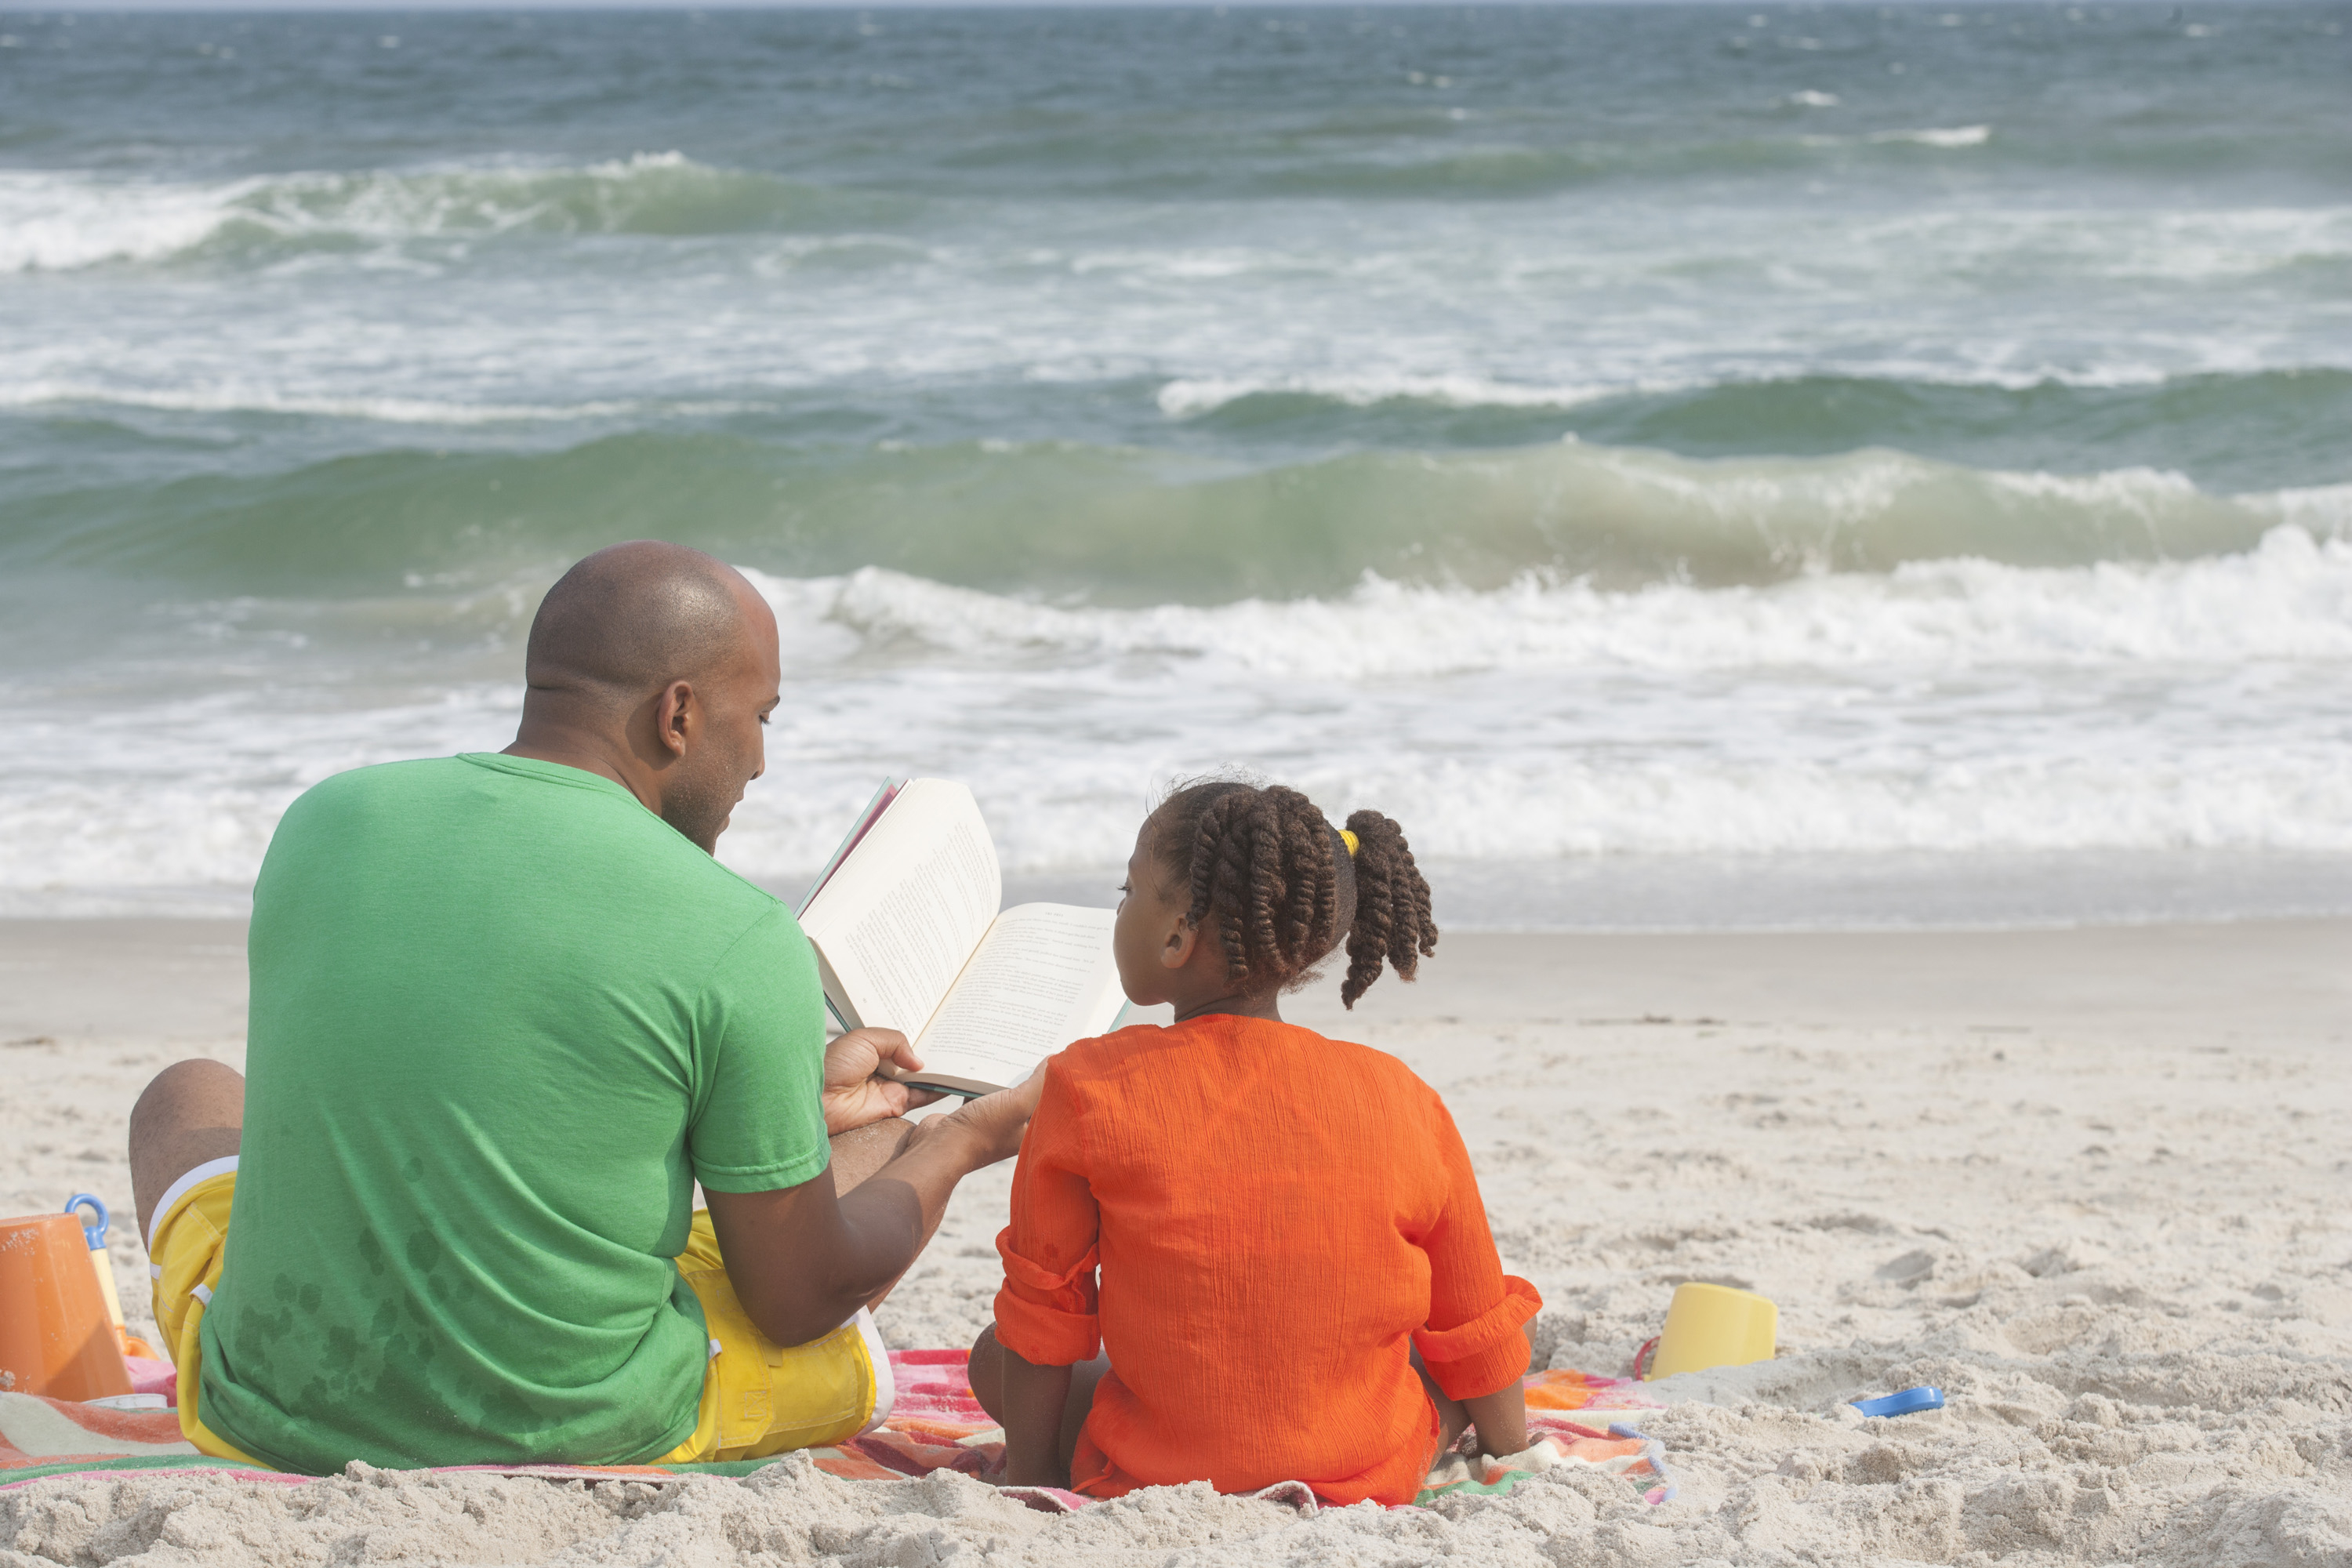 family-reading-at-the-beach_Stv53LRSo